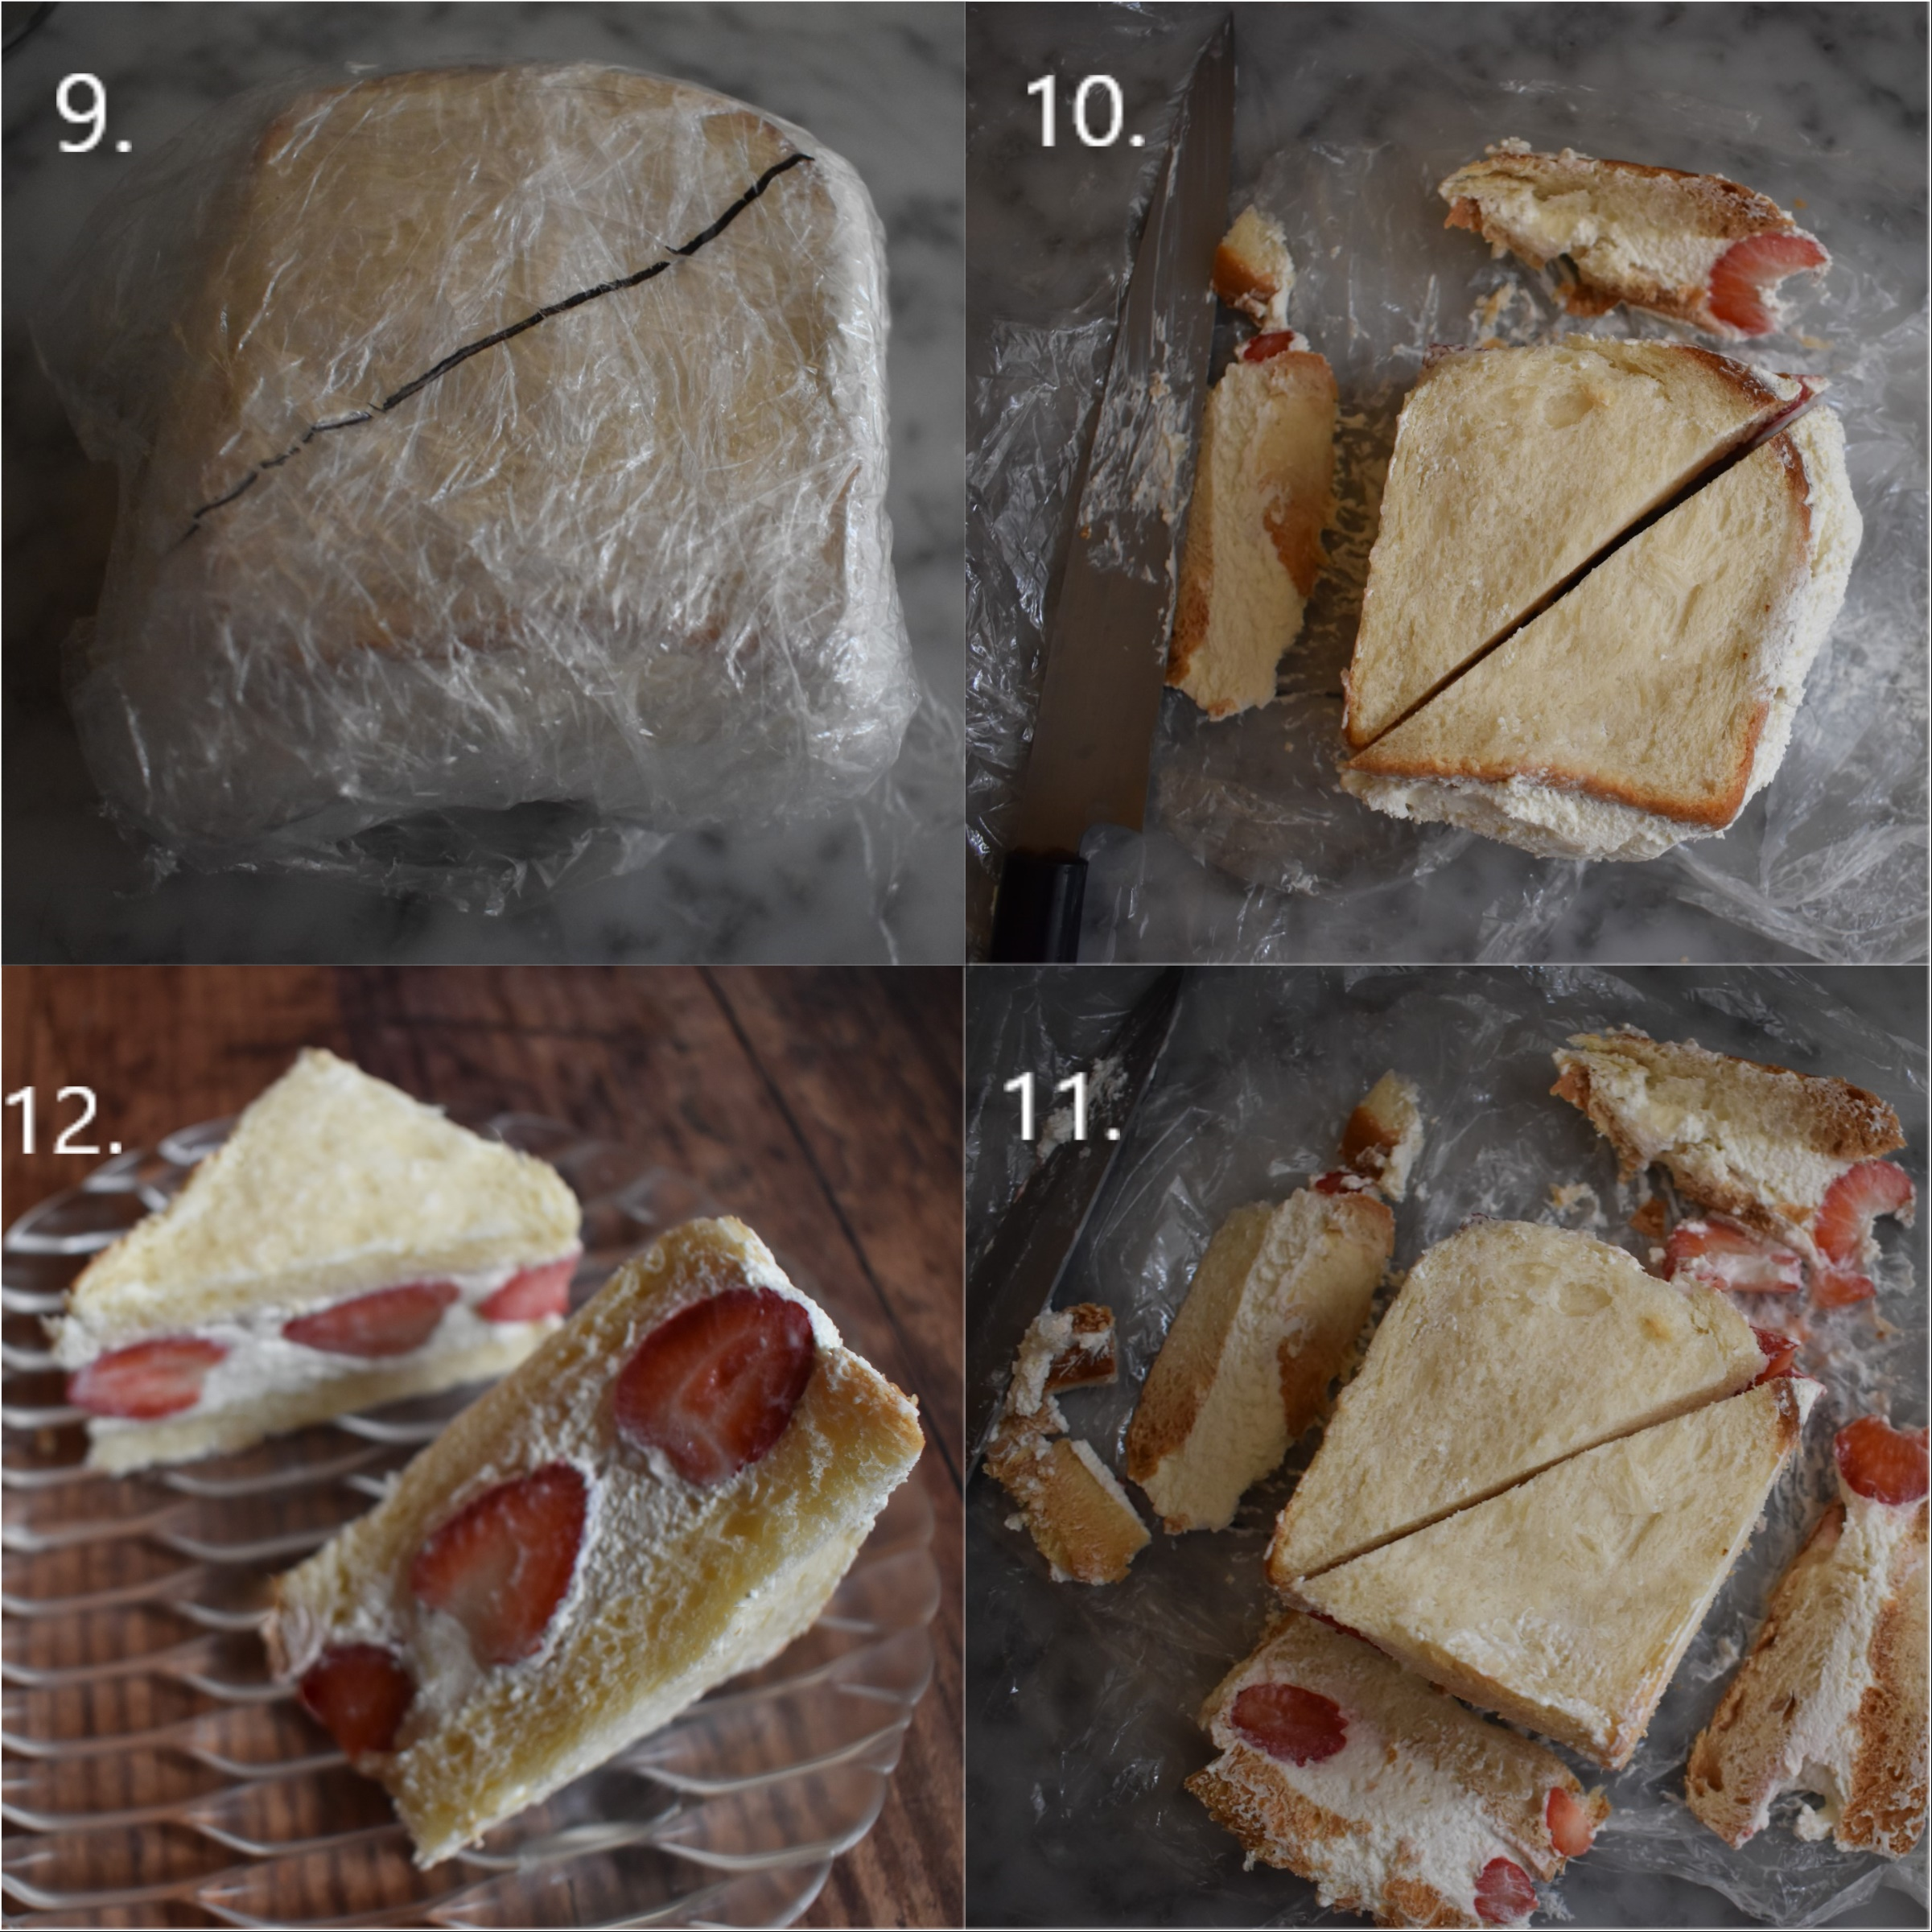 Strawberry Sando recipe, making part 3